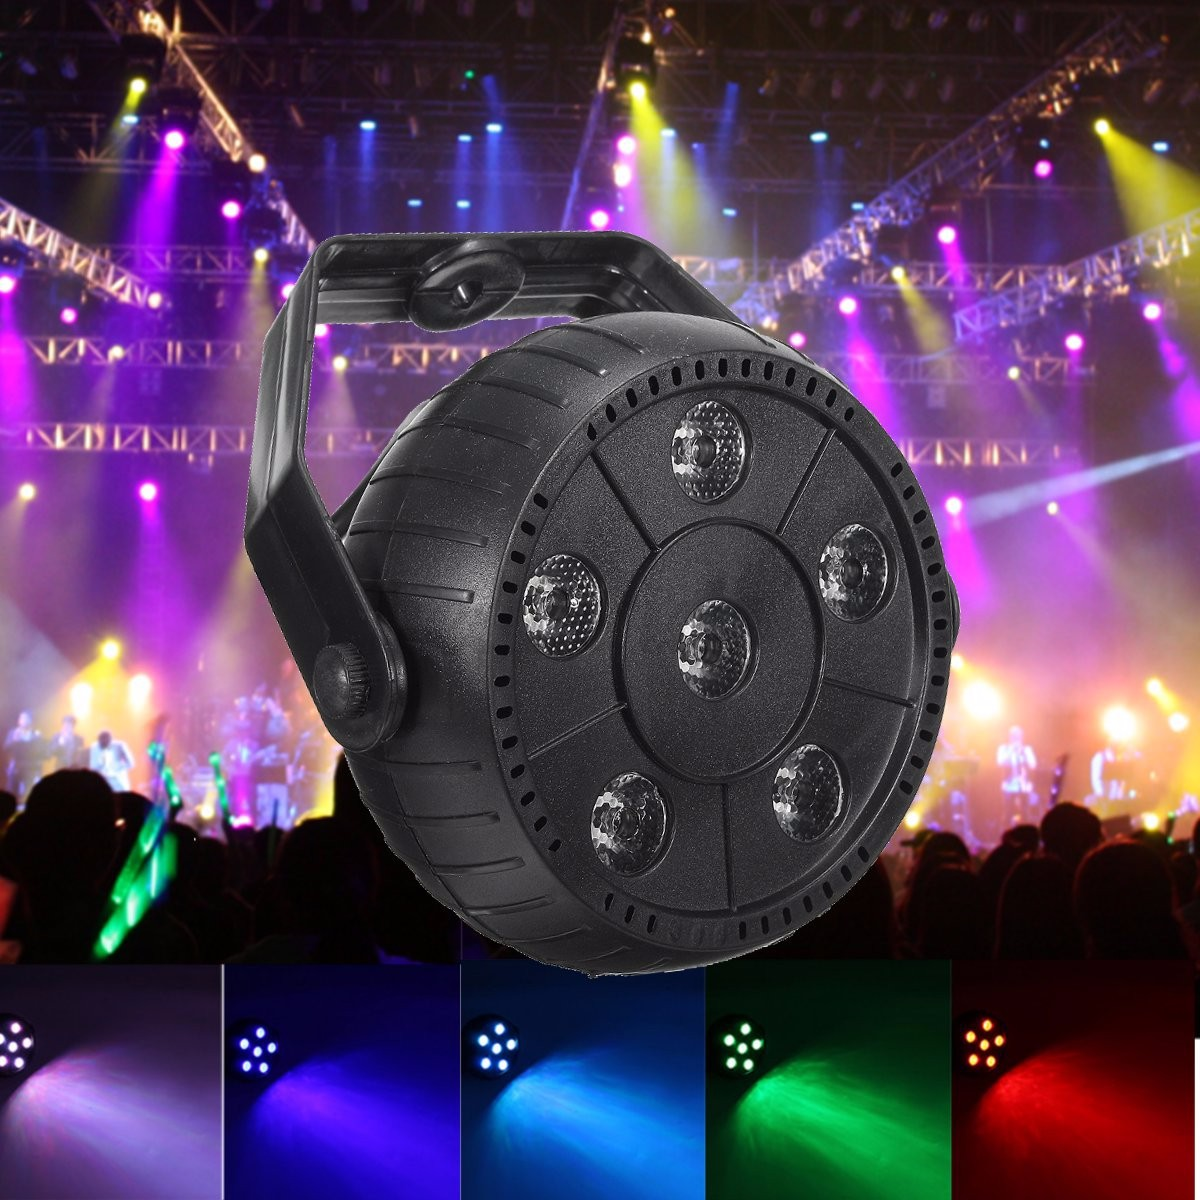 LED Lights Laser Stage Effect Lighting Club Disco DJ Party Bar eBay #721A1B